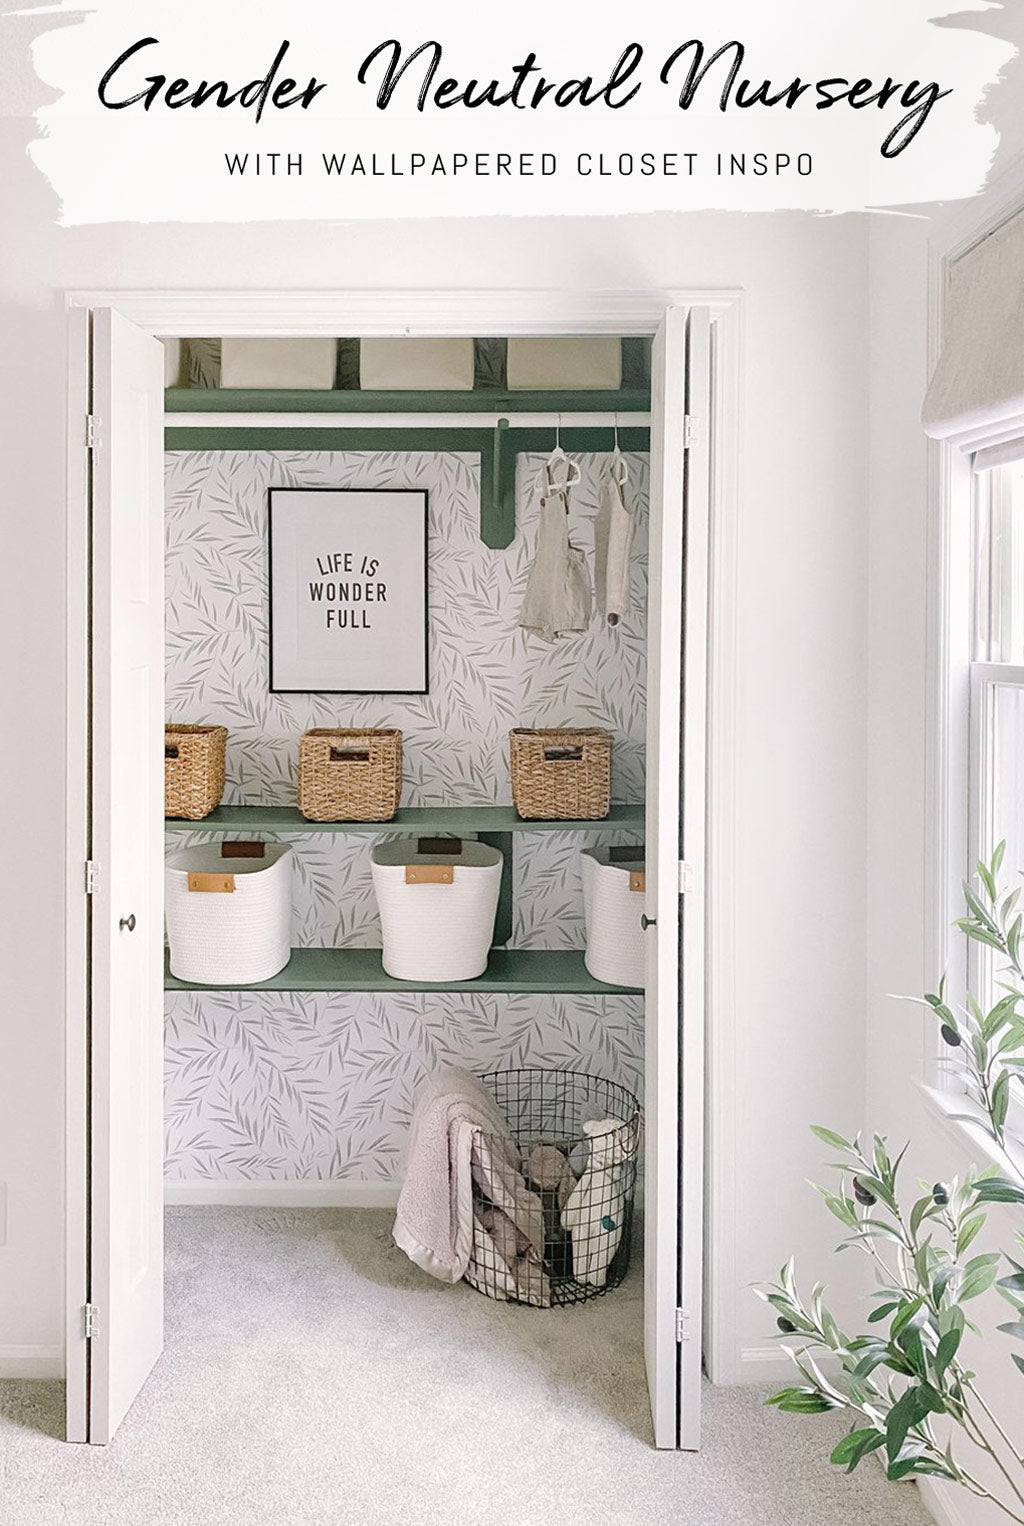 Gender neutral nursery design inspiration with botanical removable wallpaper by Livettes Wallpaper